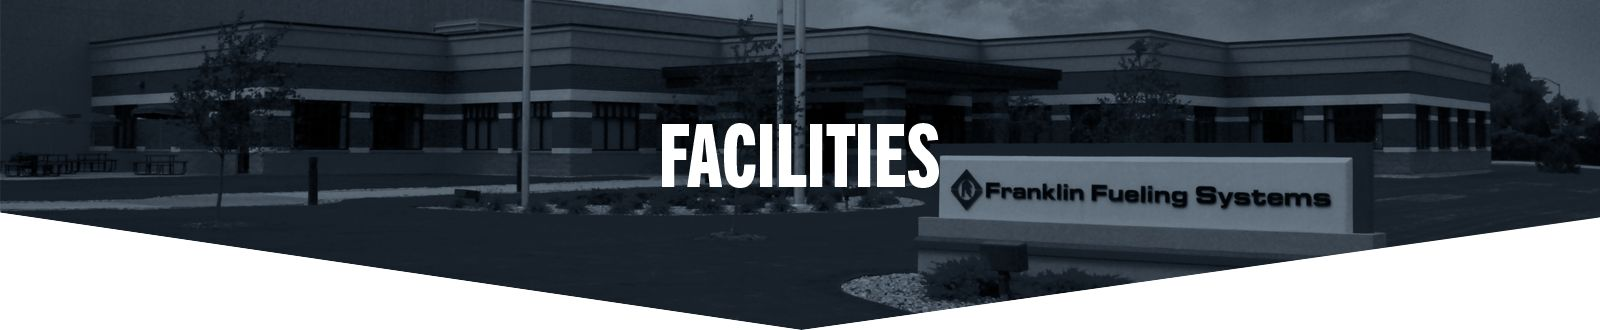 Facilities-Banner.psd